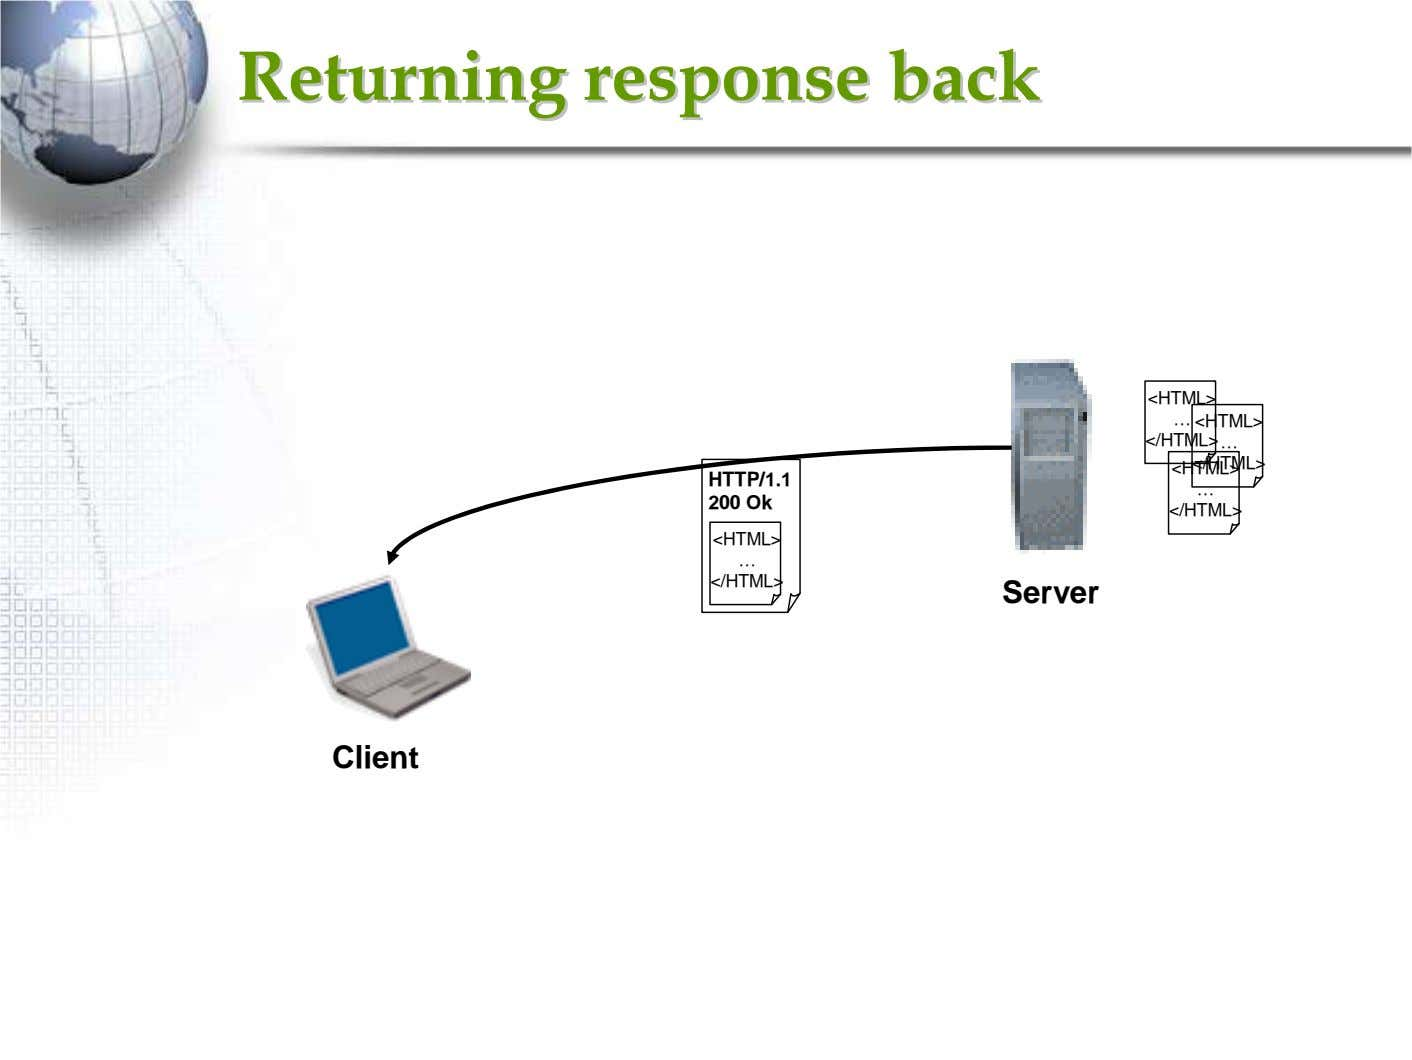 ReturningReturning responseresponse backback <HTML> … <HTML> </HTML> … <HTML>